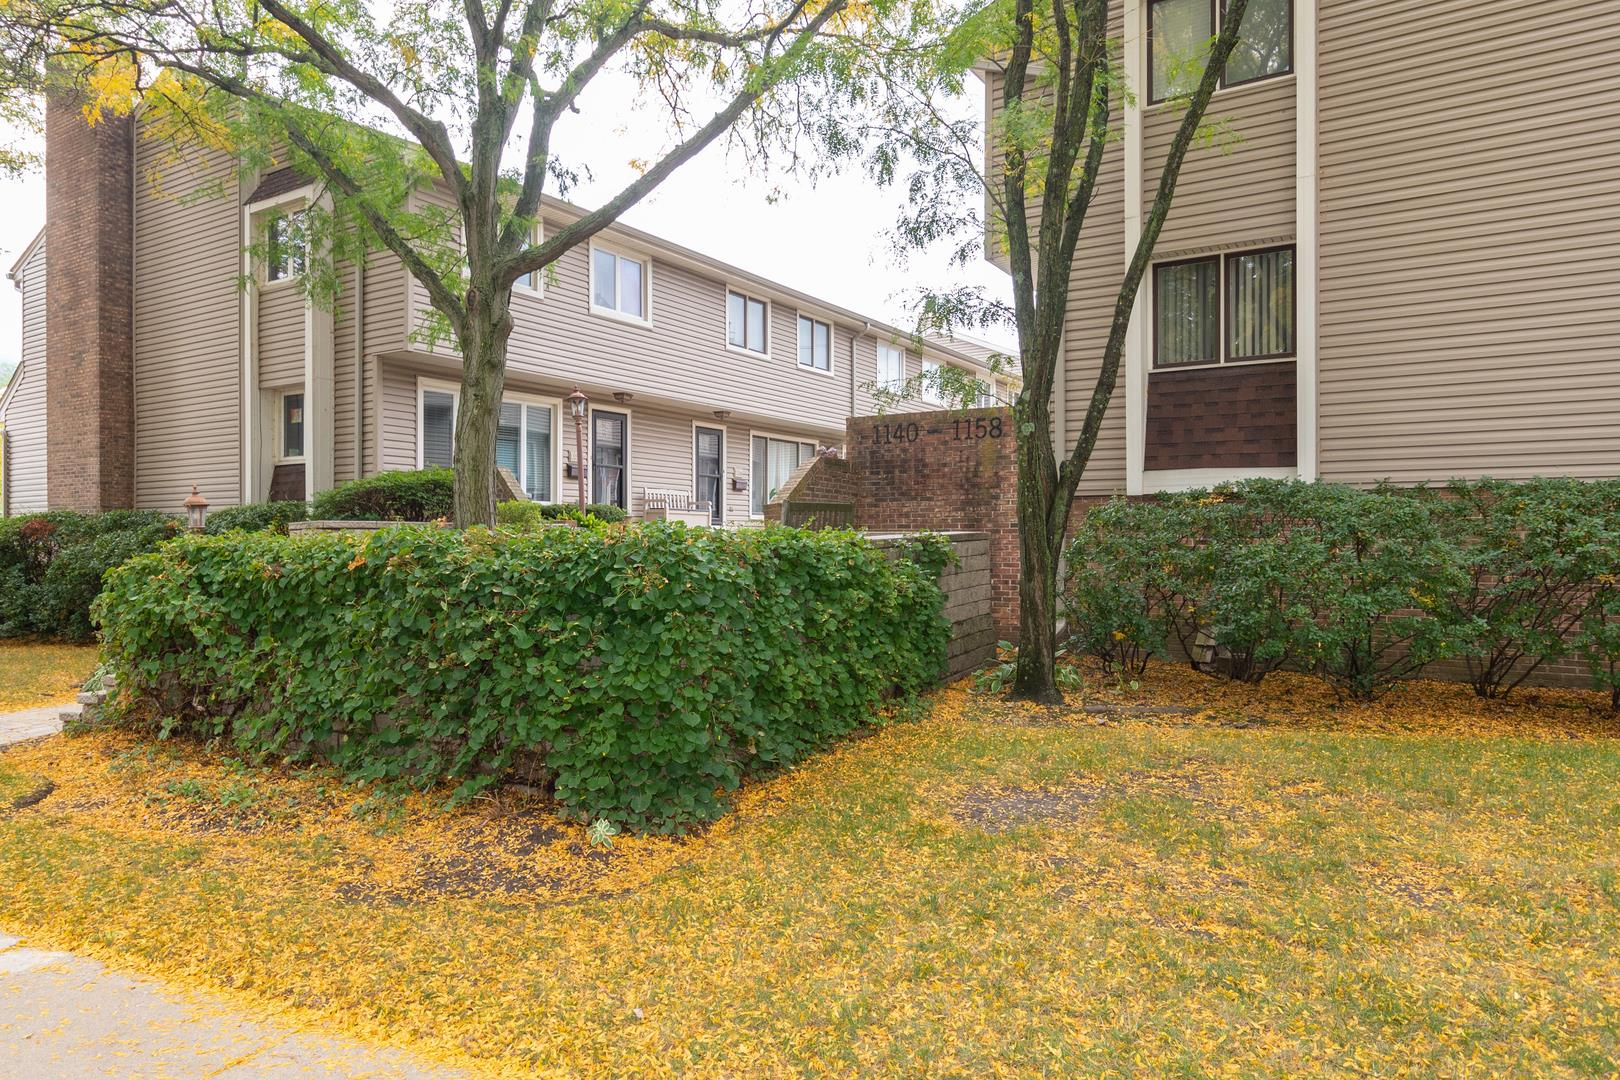 1148 Meadow Road #1148, Northbrook, IL 60062 - #: 10927114